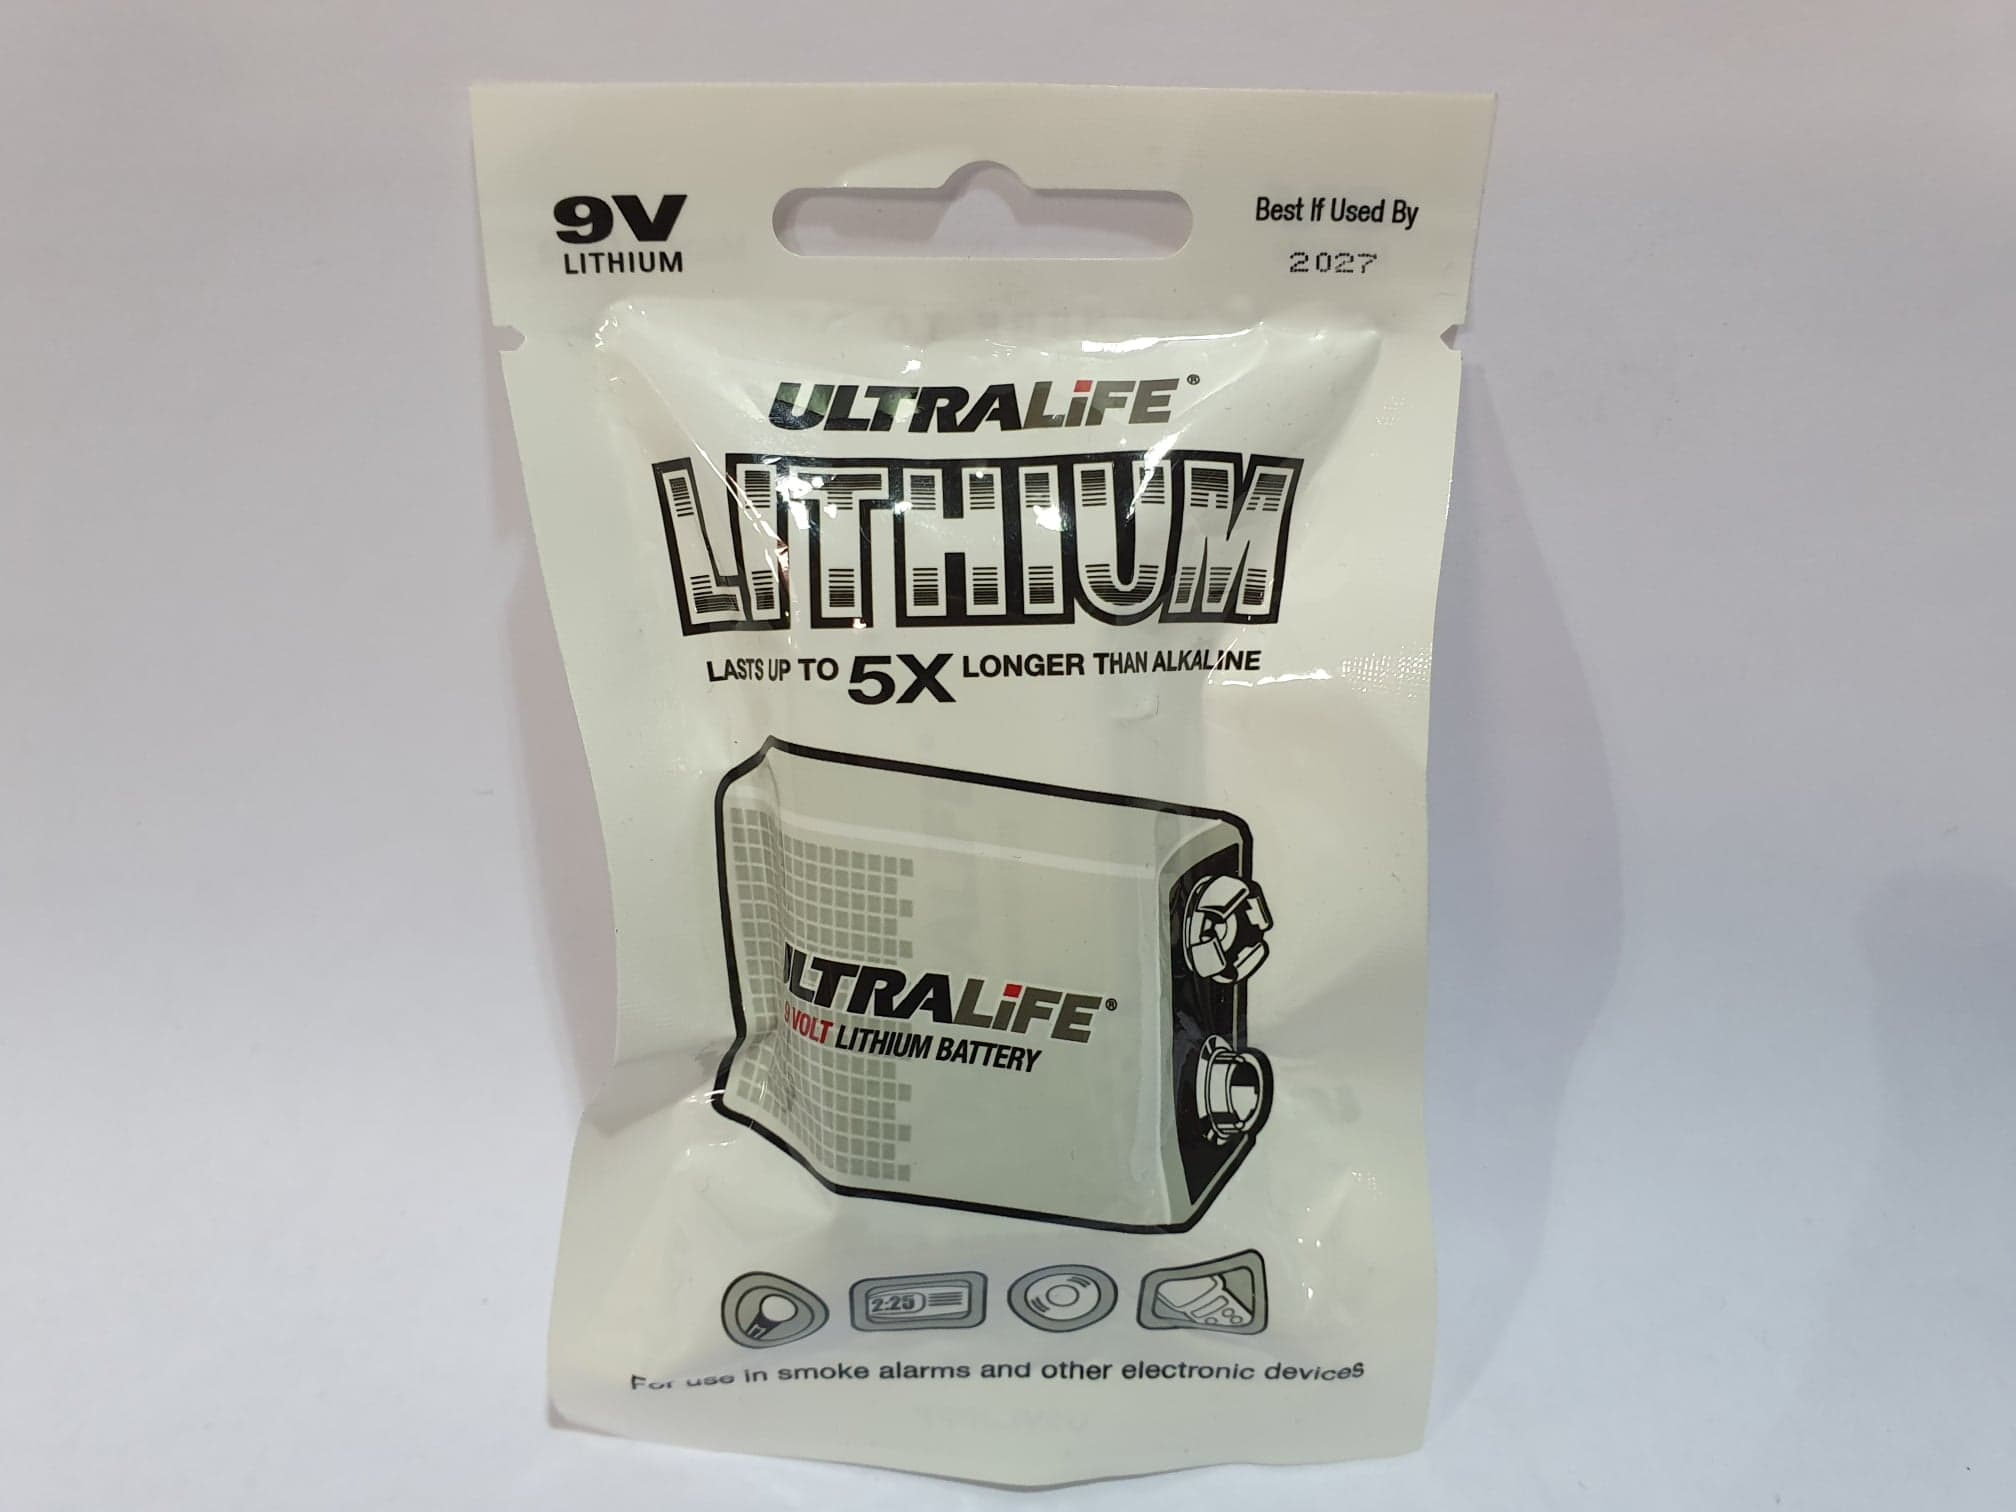 LITHIUM LC3 LECTROCOUNT DISPLAY BATTERY